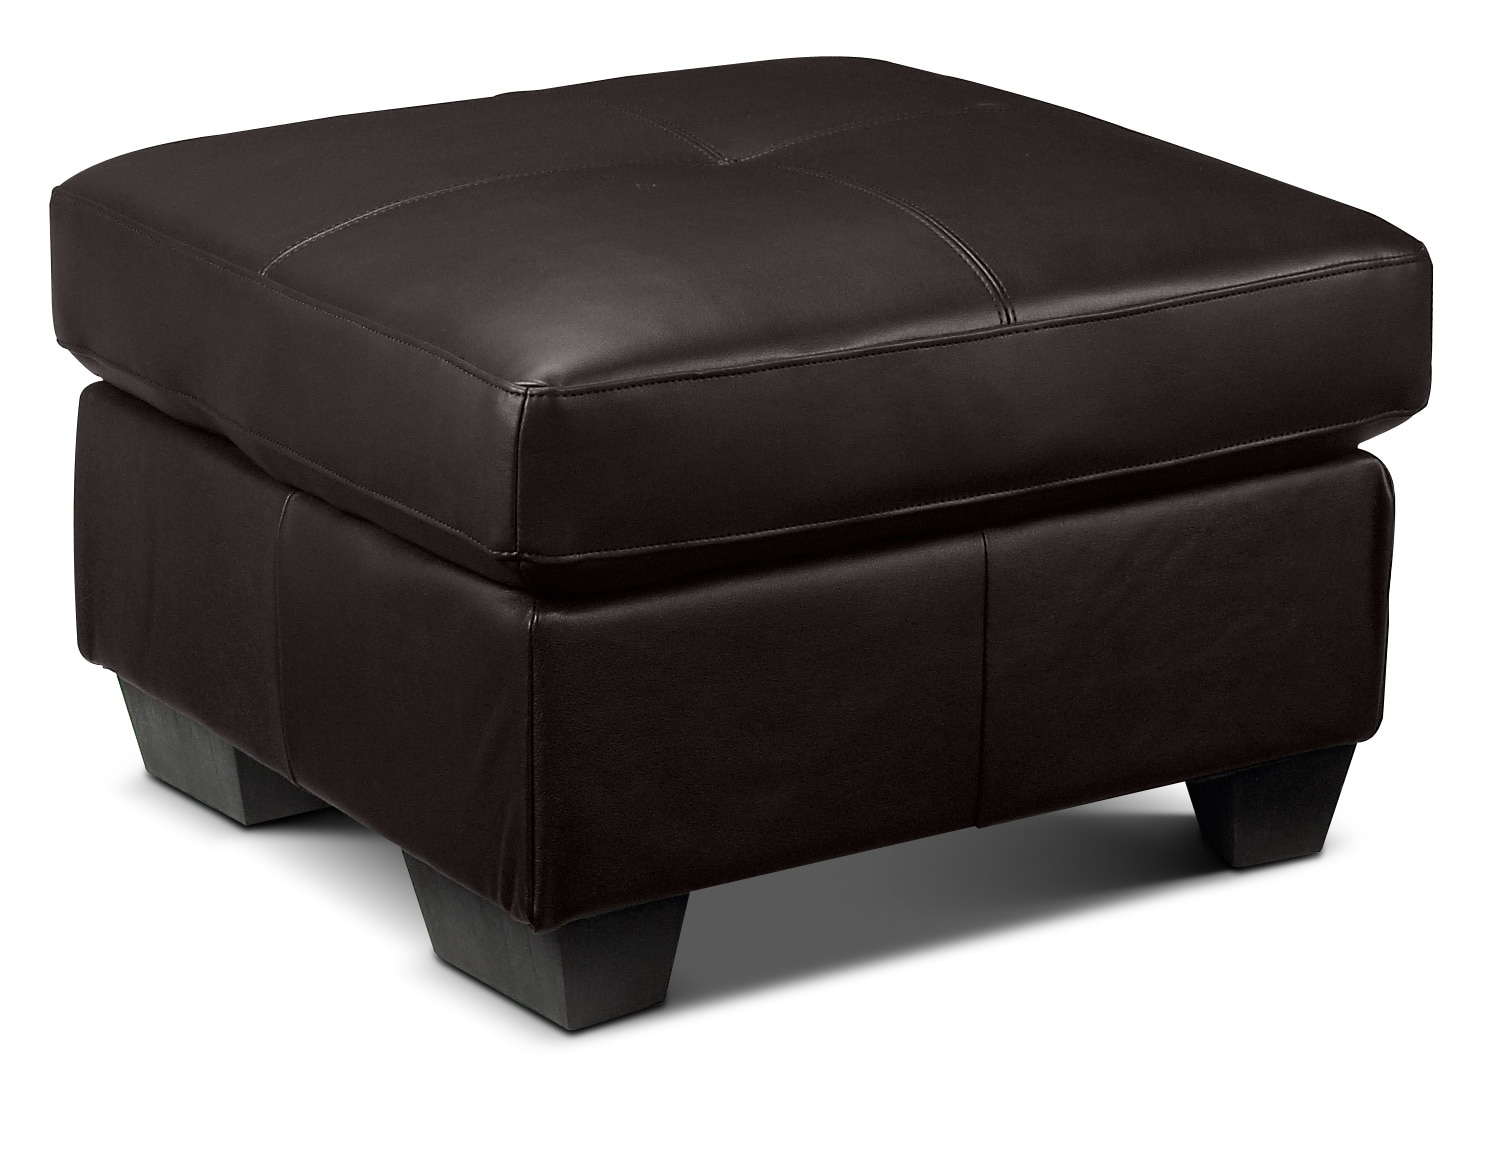 Living Room Furniture - Caitlyn Ottoman - Dark Chocolate